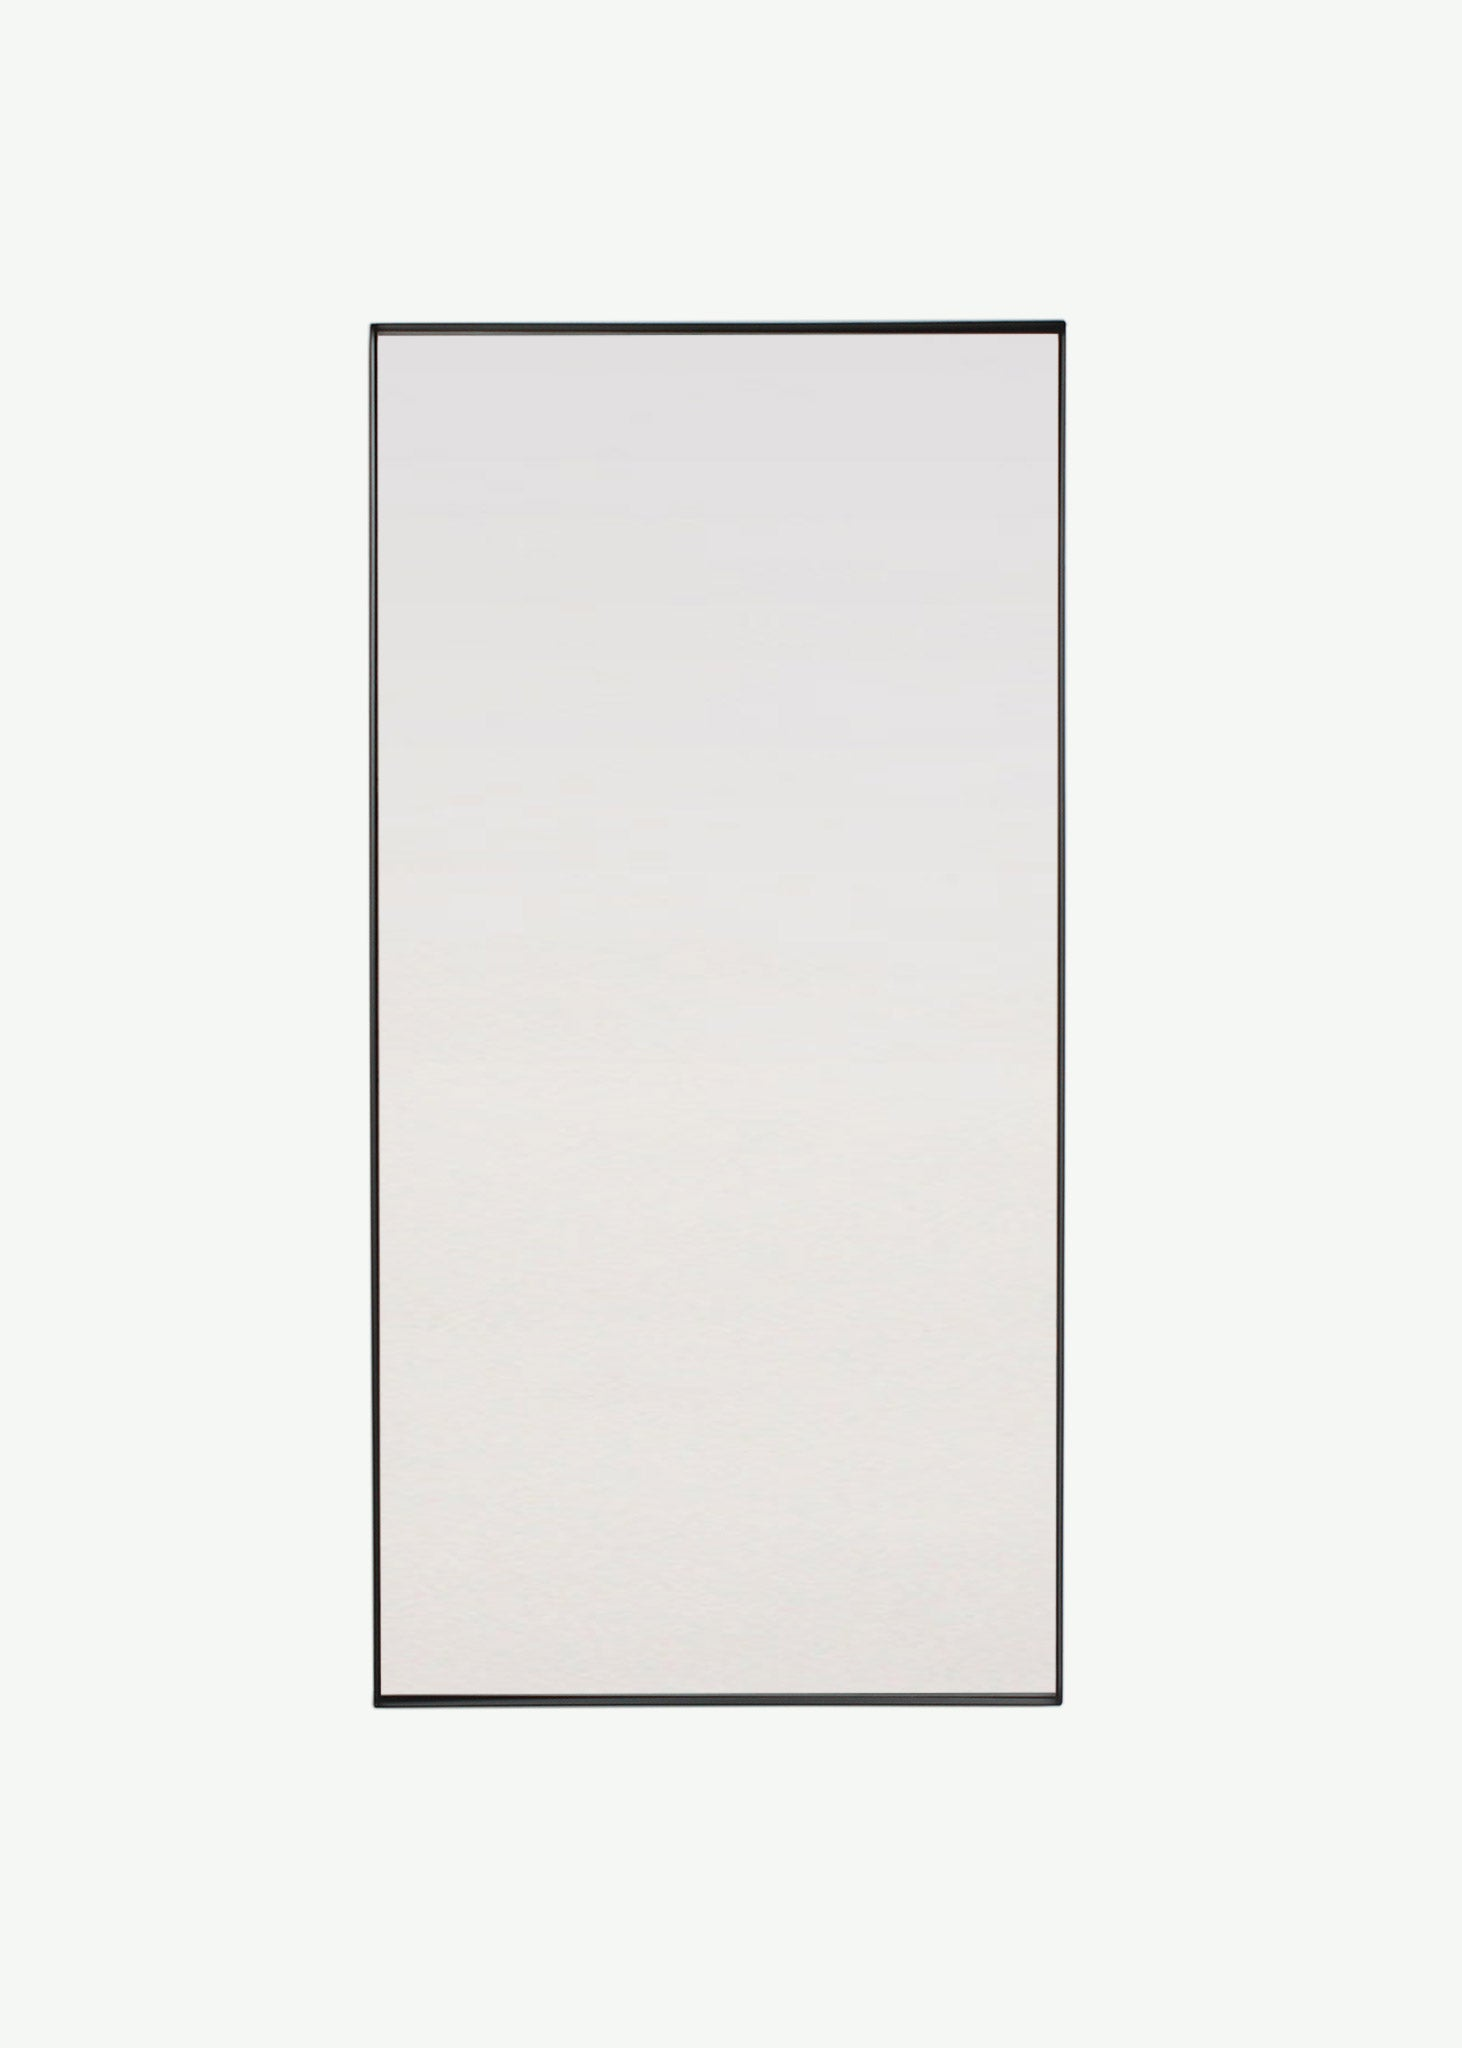 Deep Frame Square Edge Mirrors - LED Backlit